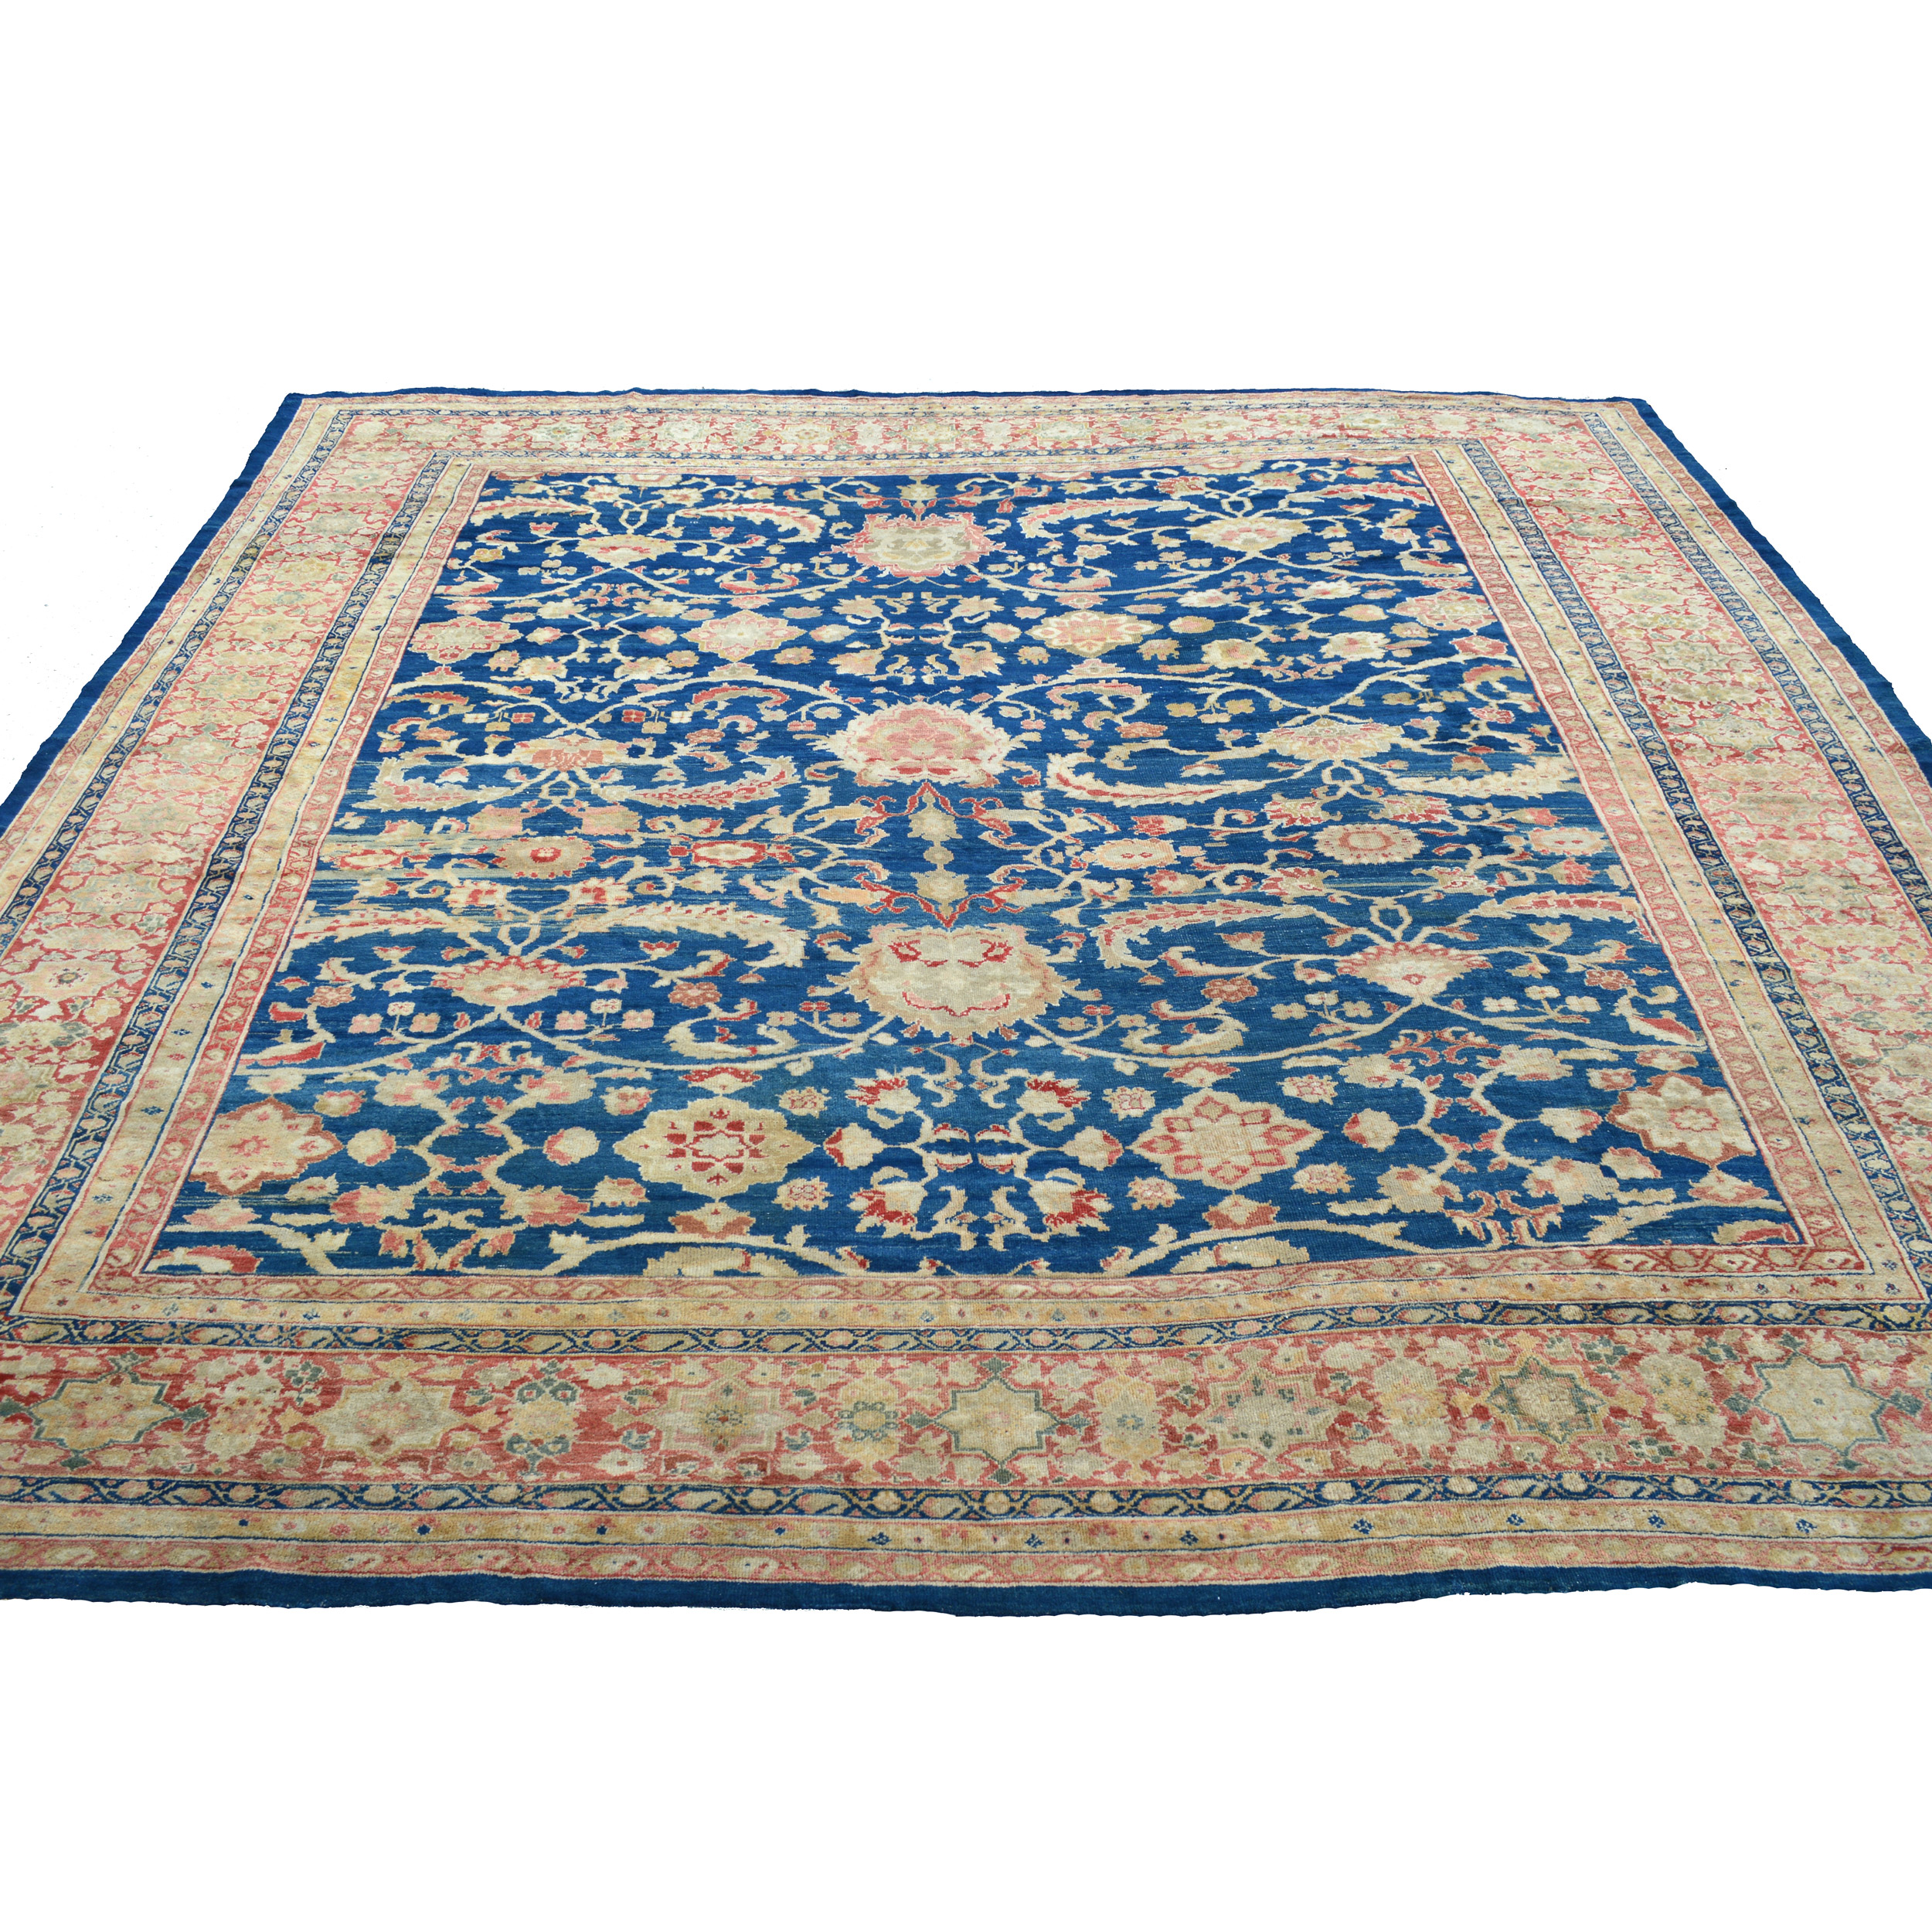 Antique Persian Sultanabad carpet almost certainly commission by the Anglo-Swiss firm Ziegler & Co., circa 1890 - Douglas Stock Gallery, Antique Oriental rugs Boston,MA area, New England